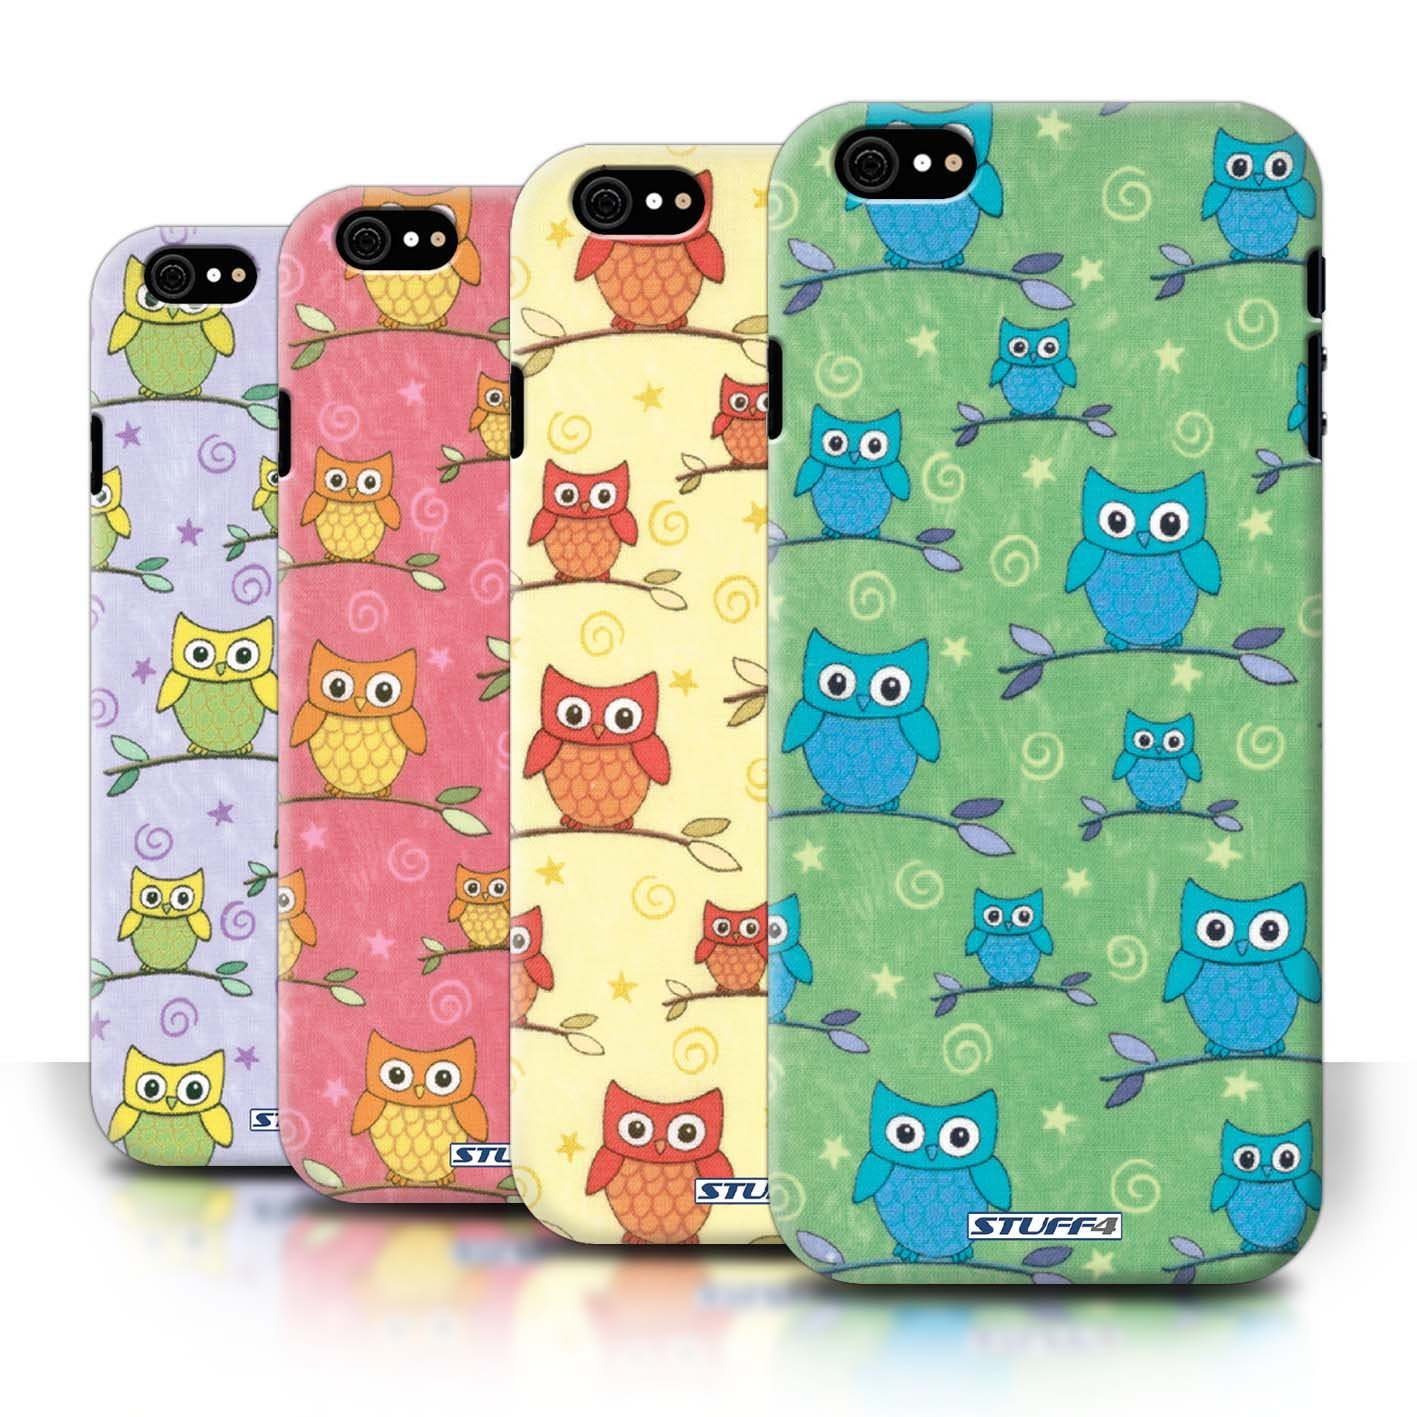 STUFF4 Phone Case / Cover for Apple iPhone 6/6S / Pack (11 pcs) / Cute Owl Pattern Collection / by Deb Strain / Penny Lane Publishing, Inc.reviews and more information